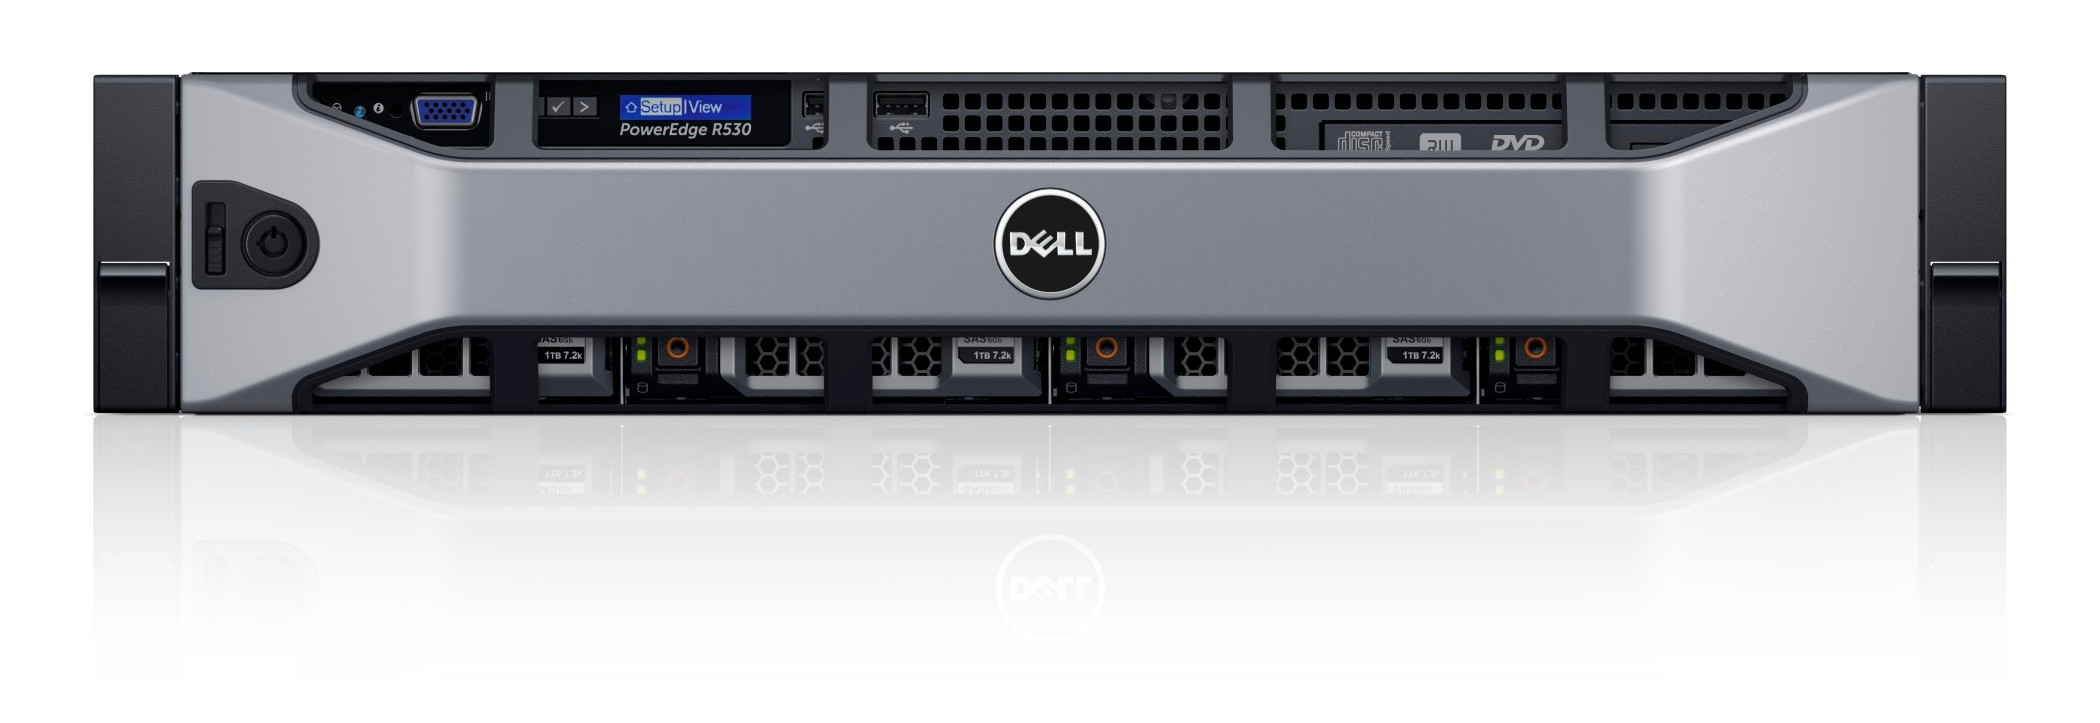 MÁY CHỦ DELL POWEREDGE R530 E5-2620V4